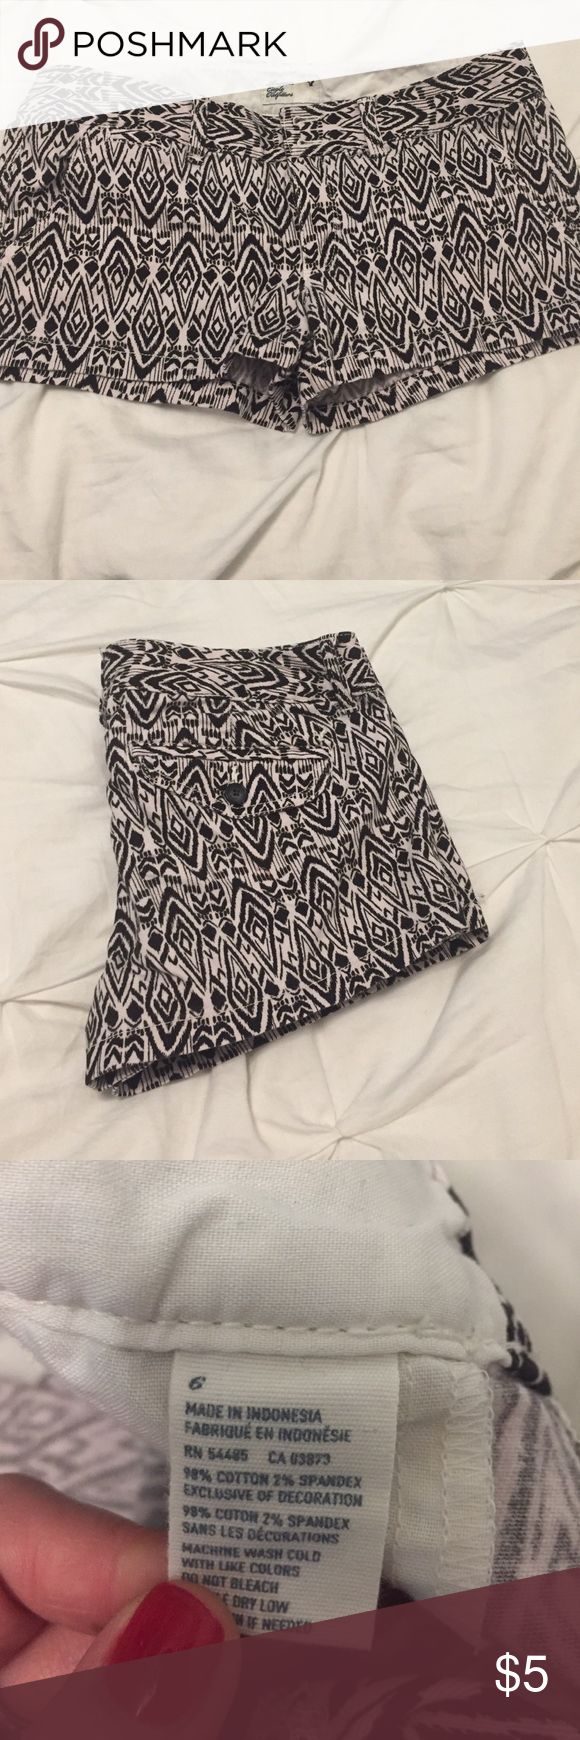 American Eagle Tribal Print Shorts Super comfy American Eagle tribal print shorts American Eagle Outfitters Shorts